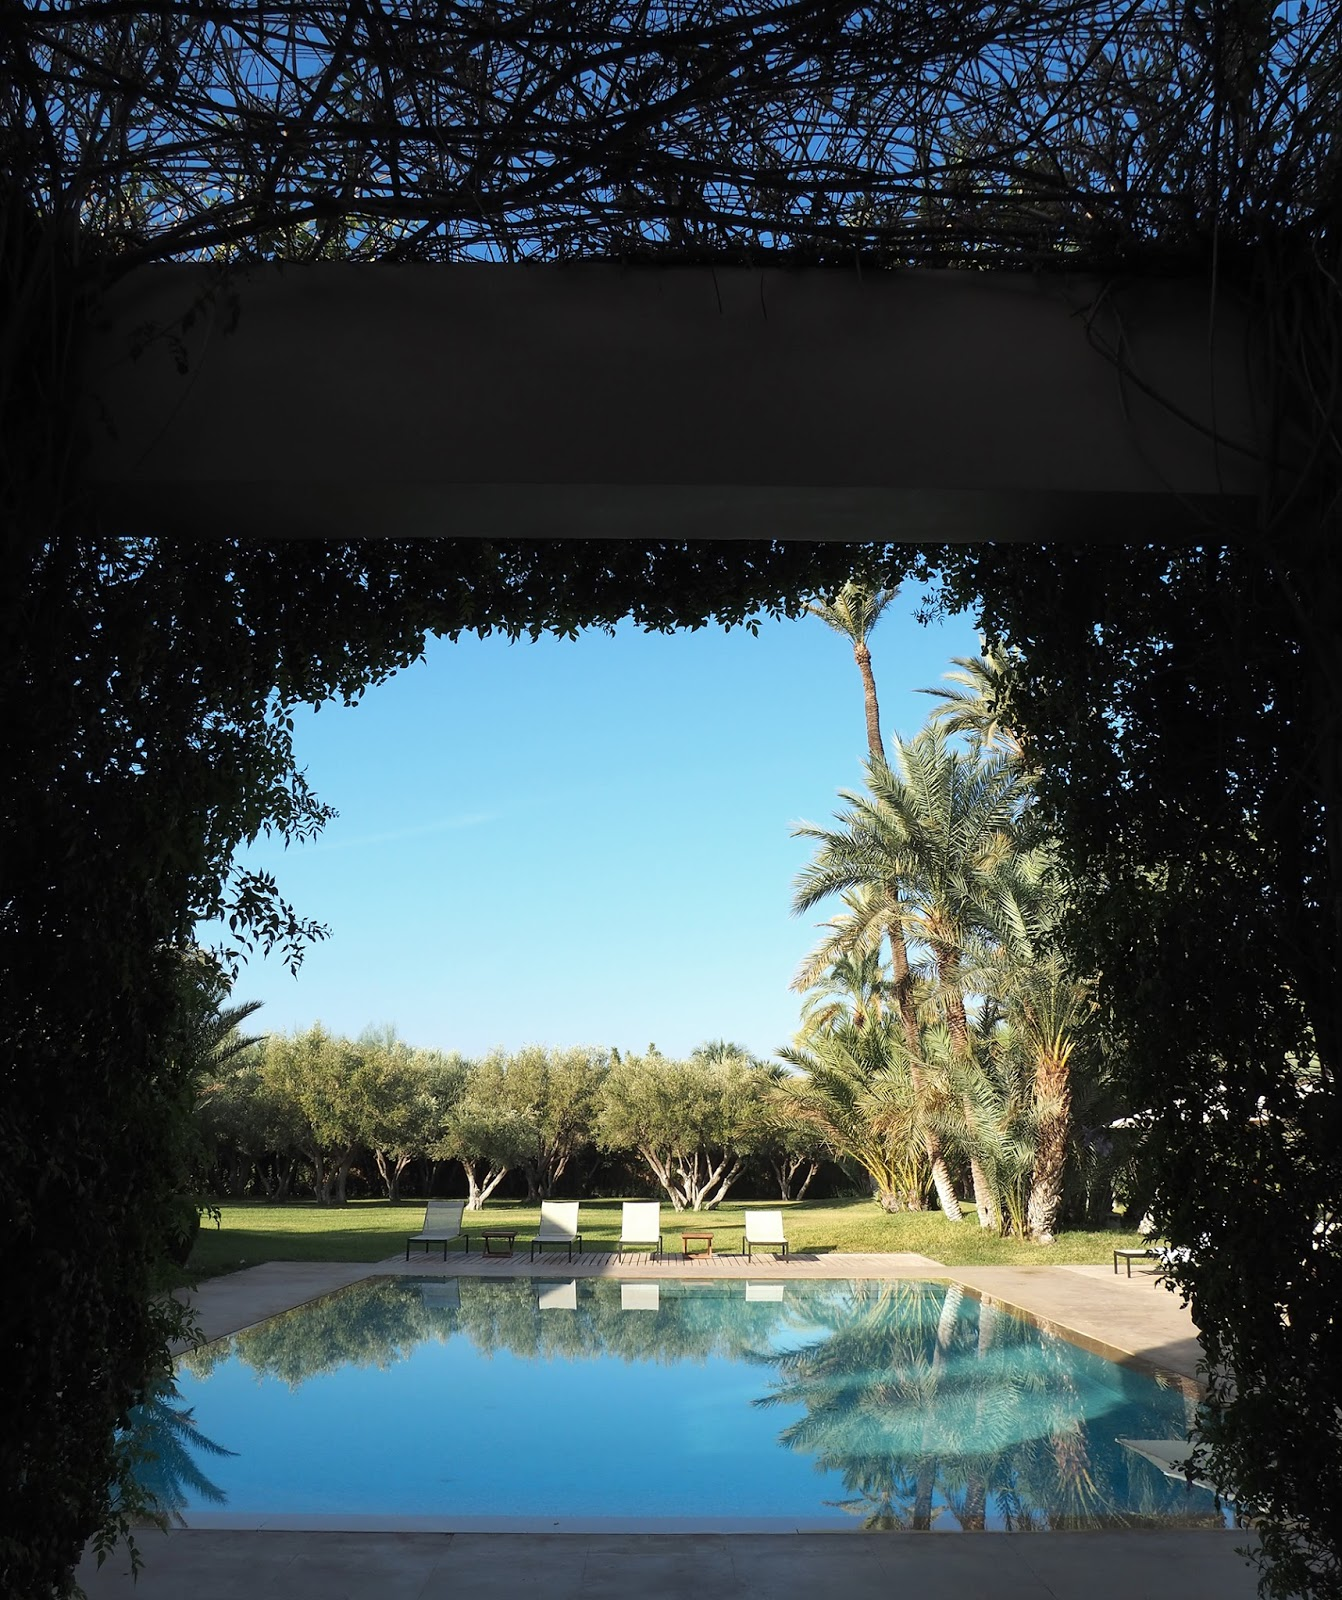 Euriental | luxury travel & style | Photo diary of Marrakech, Morocco